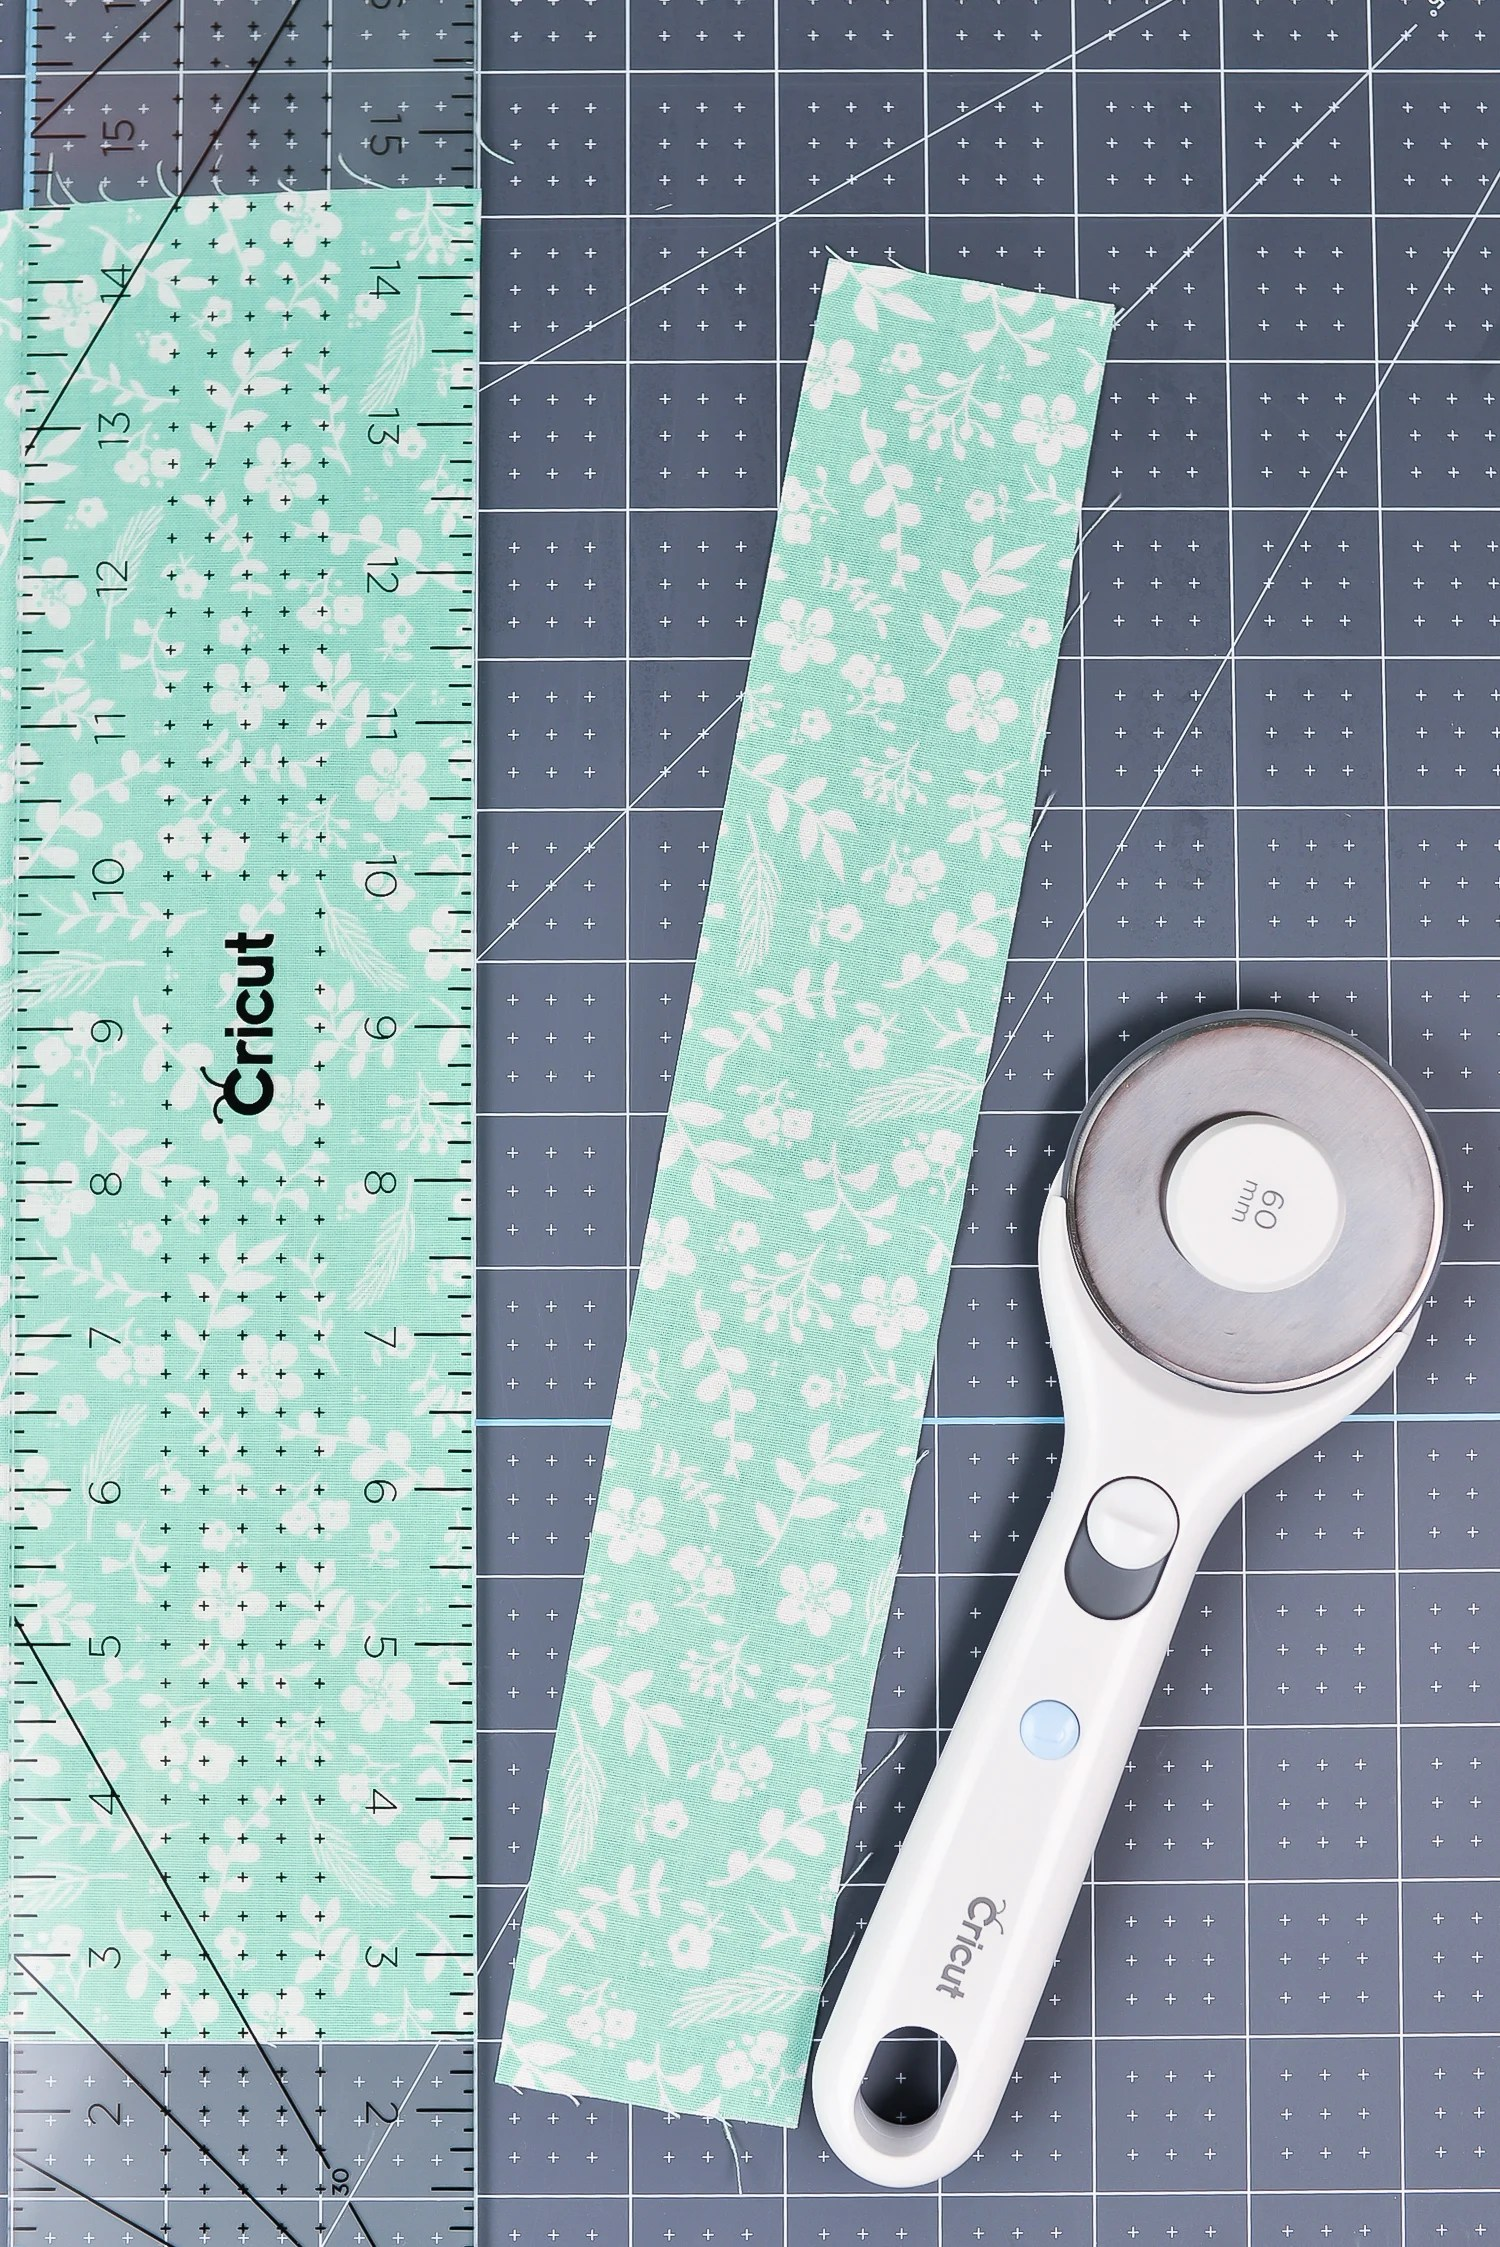 Cricut Hand Tools: The Rotary Cutter and Acrylic Ruler with Cutting Mat